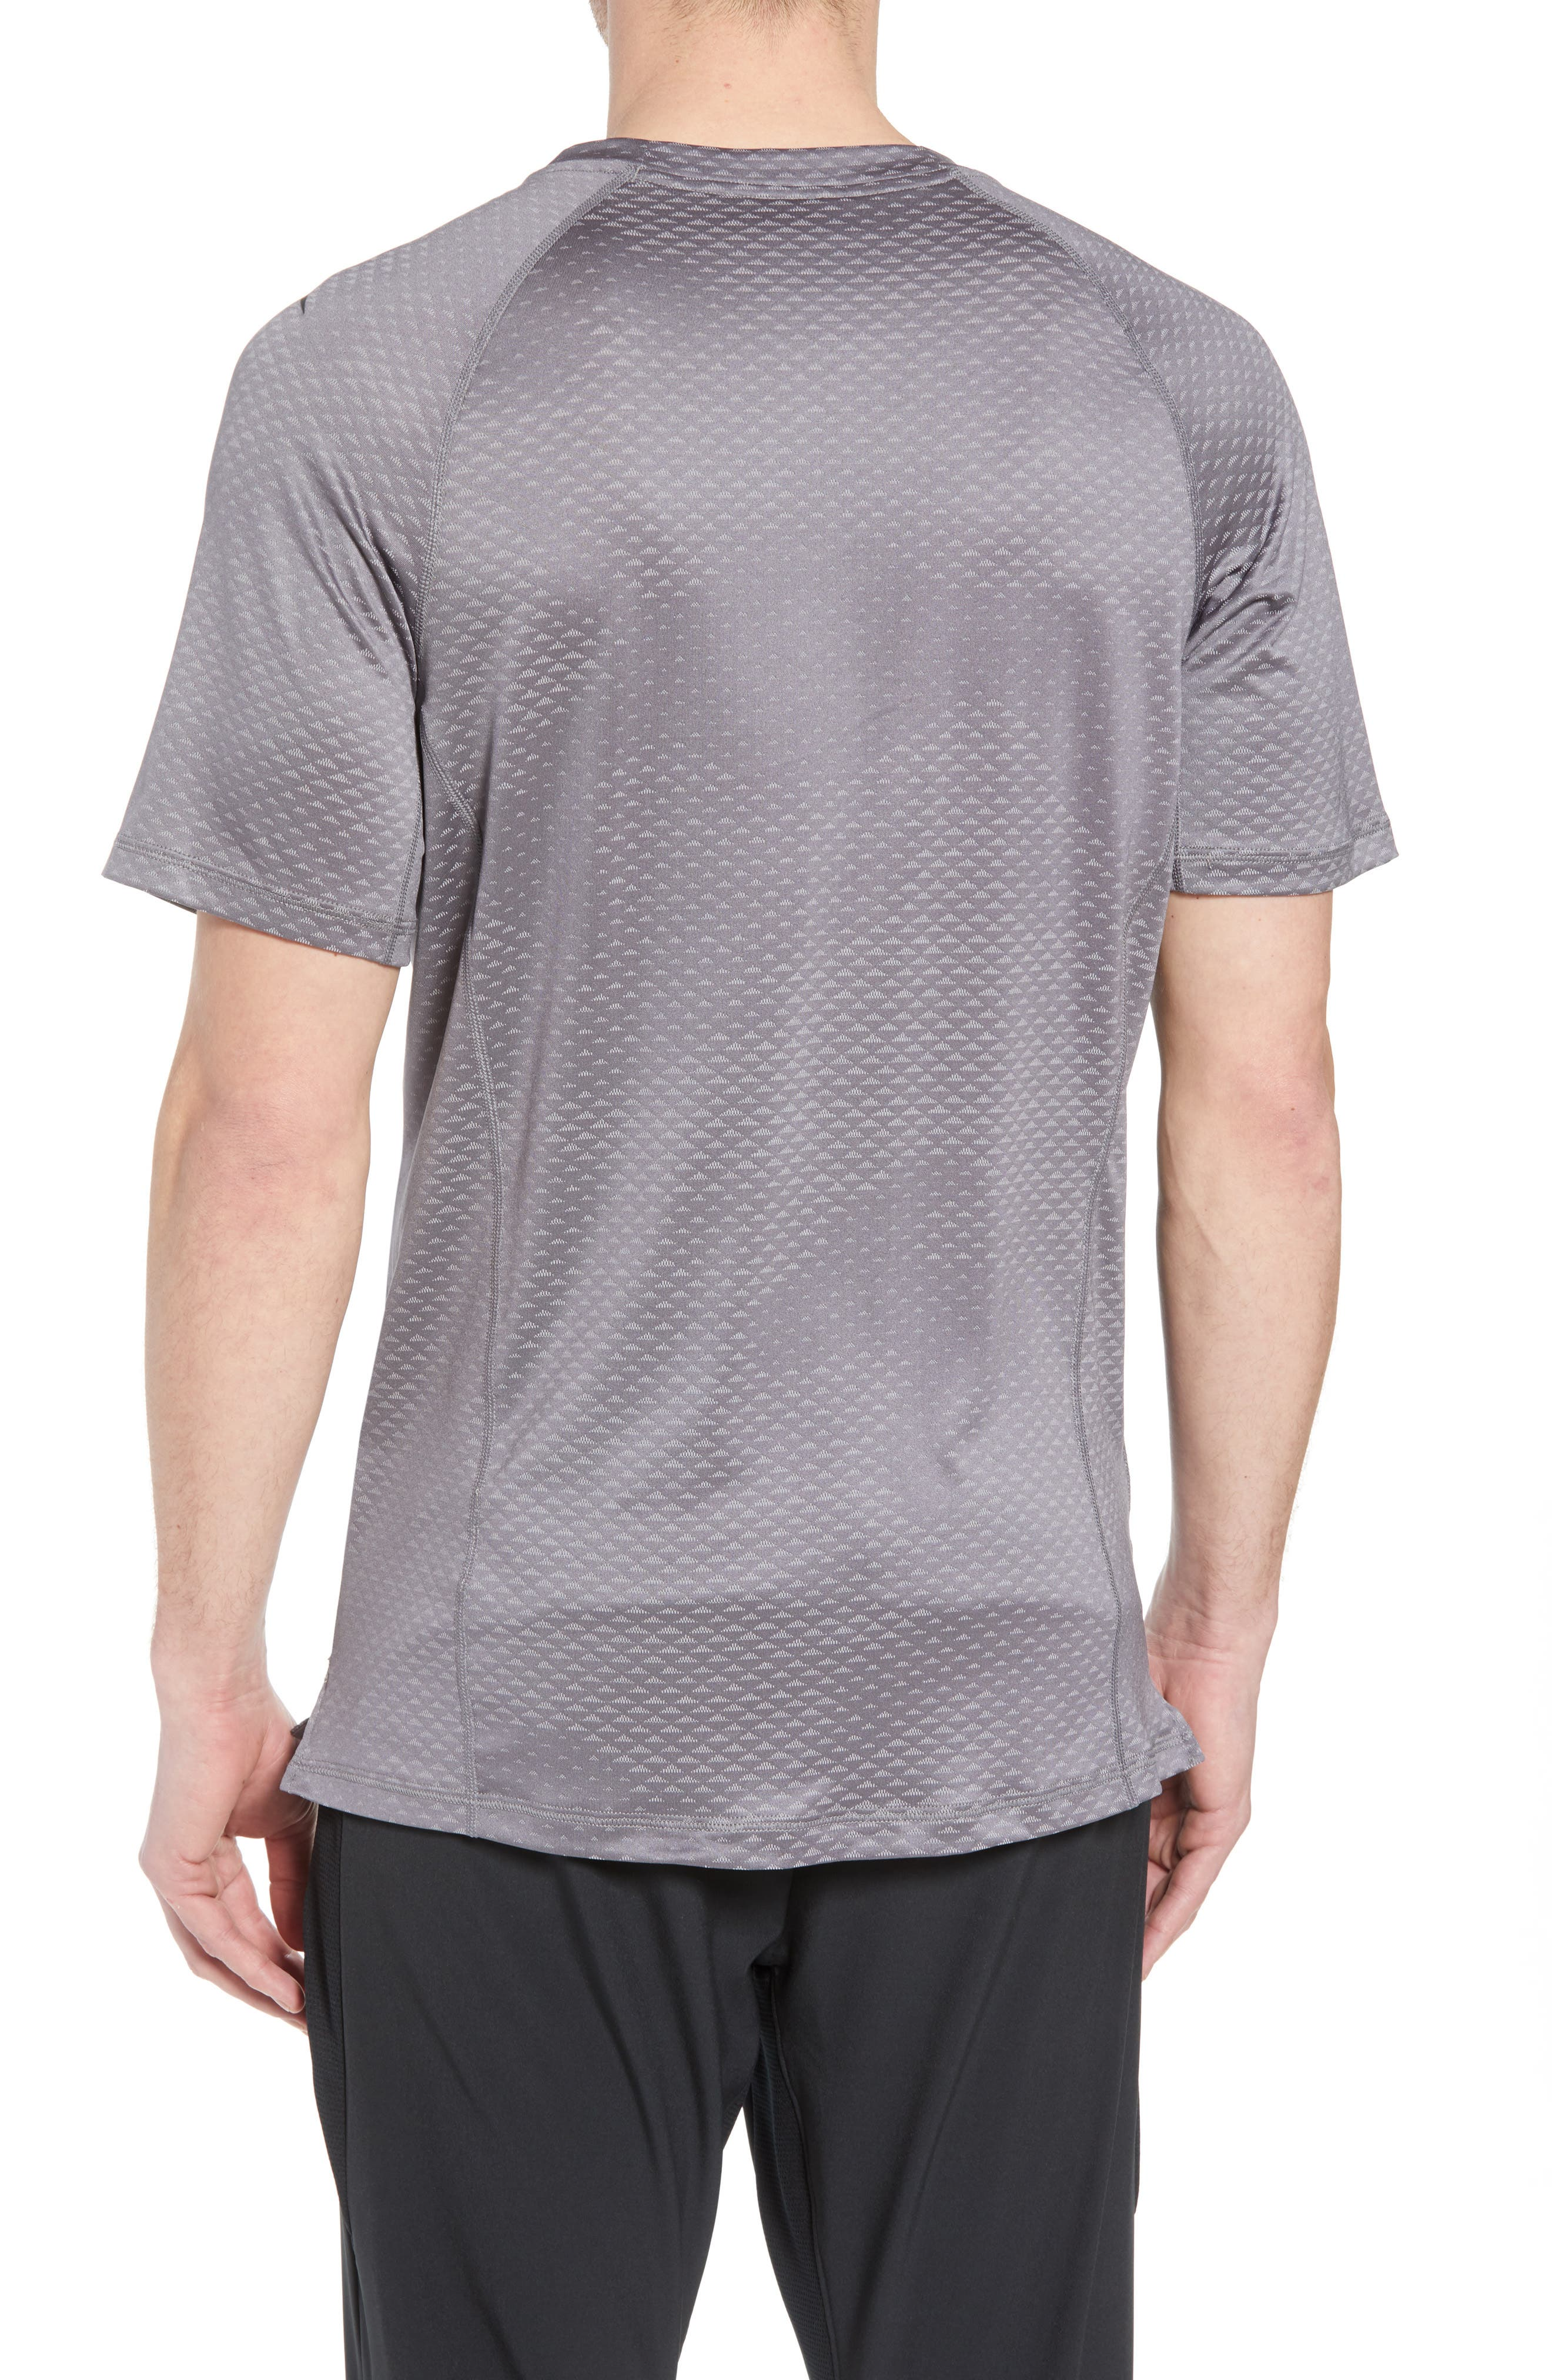 Pro HyperCool Fitted Crewneck T-Shirt,                             Alternate thumbnail 5, color,